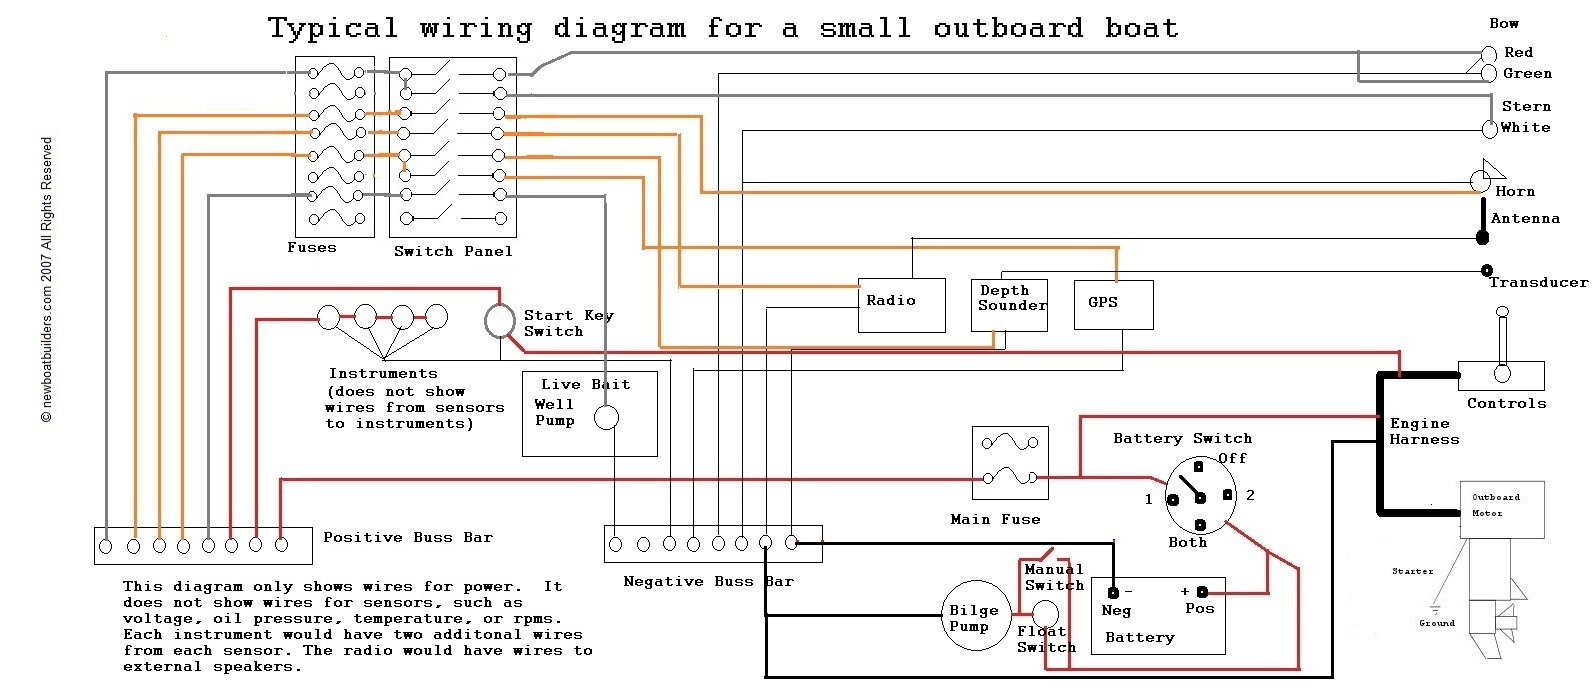 marine coil wiring diagram boat building standards basic electricity wiring your boat wiring diagram ·